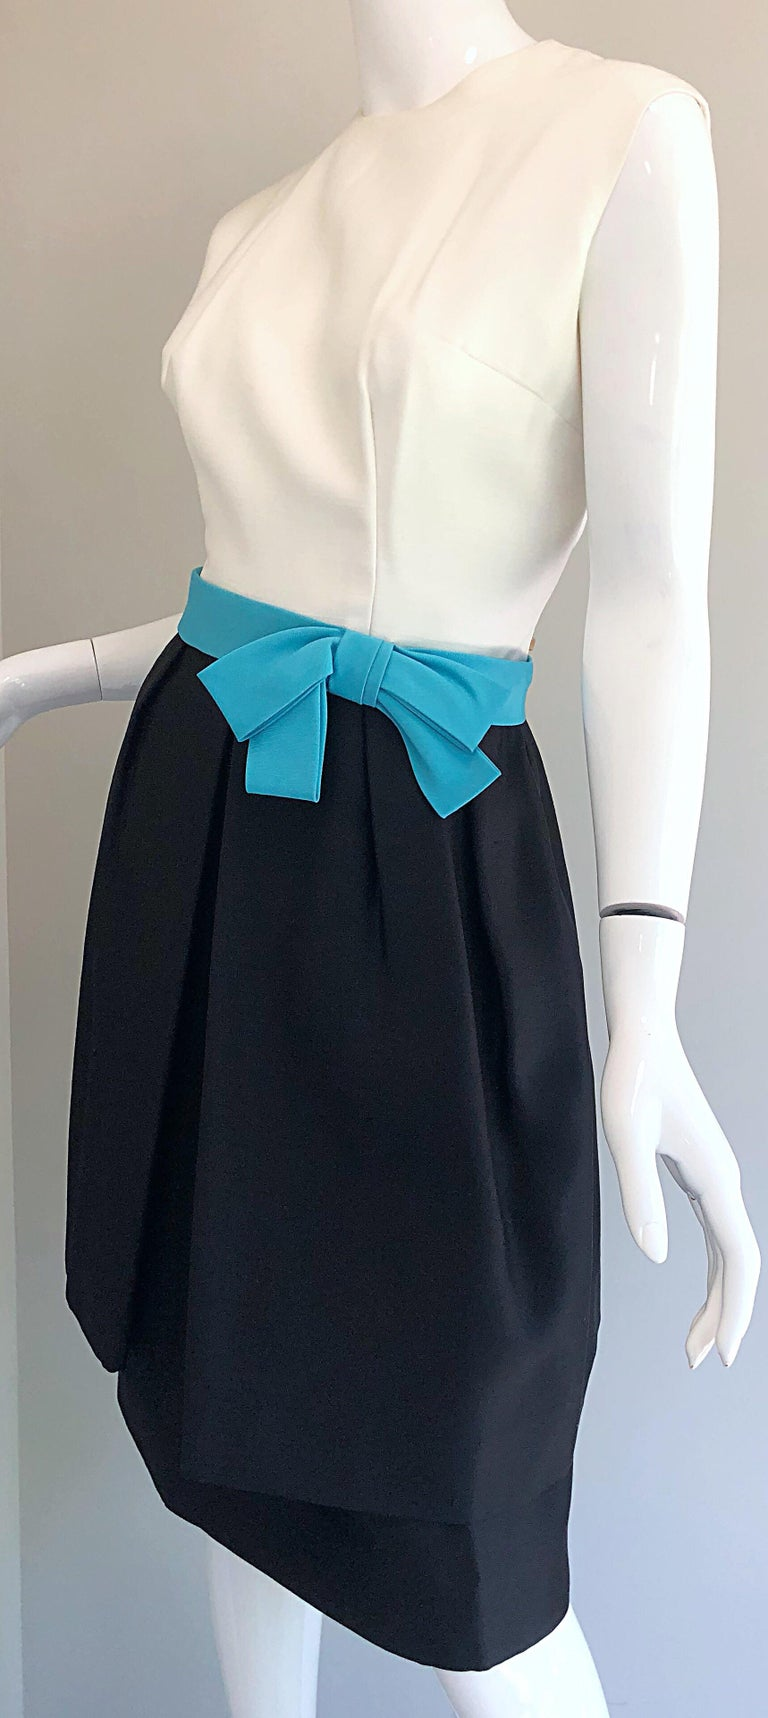 1950s B. Altman Black and White + Turquoise Blue Vintage 50s Silk Cocktail Dress For Sale 1